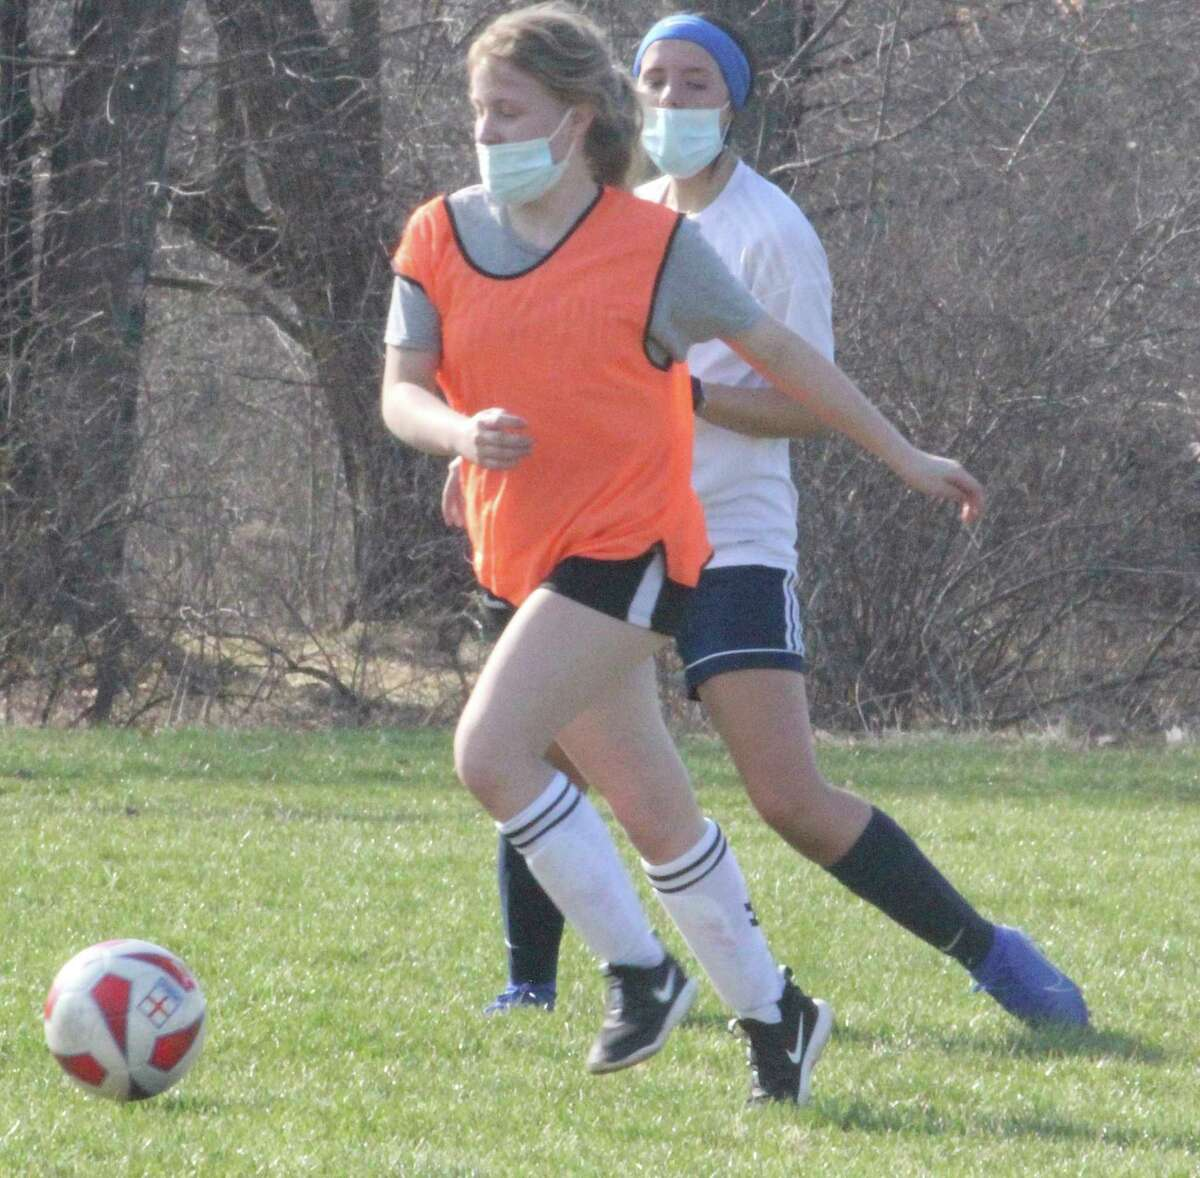 Big Rapids girls soccer players worked on their skills during a Tuesday practice. (Pioneer photo/John Raffel)